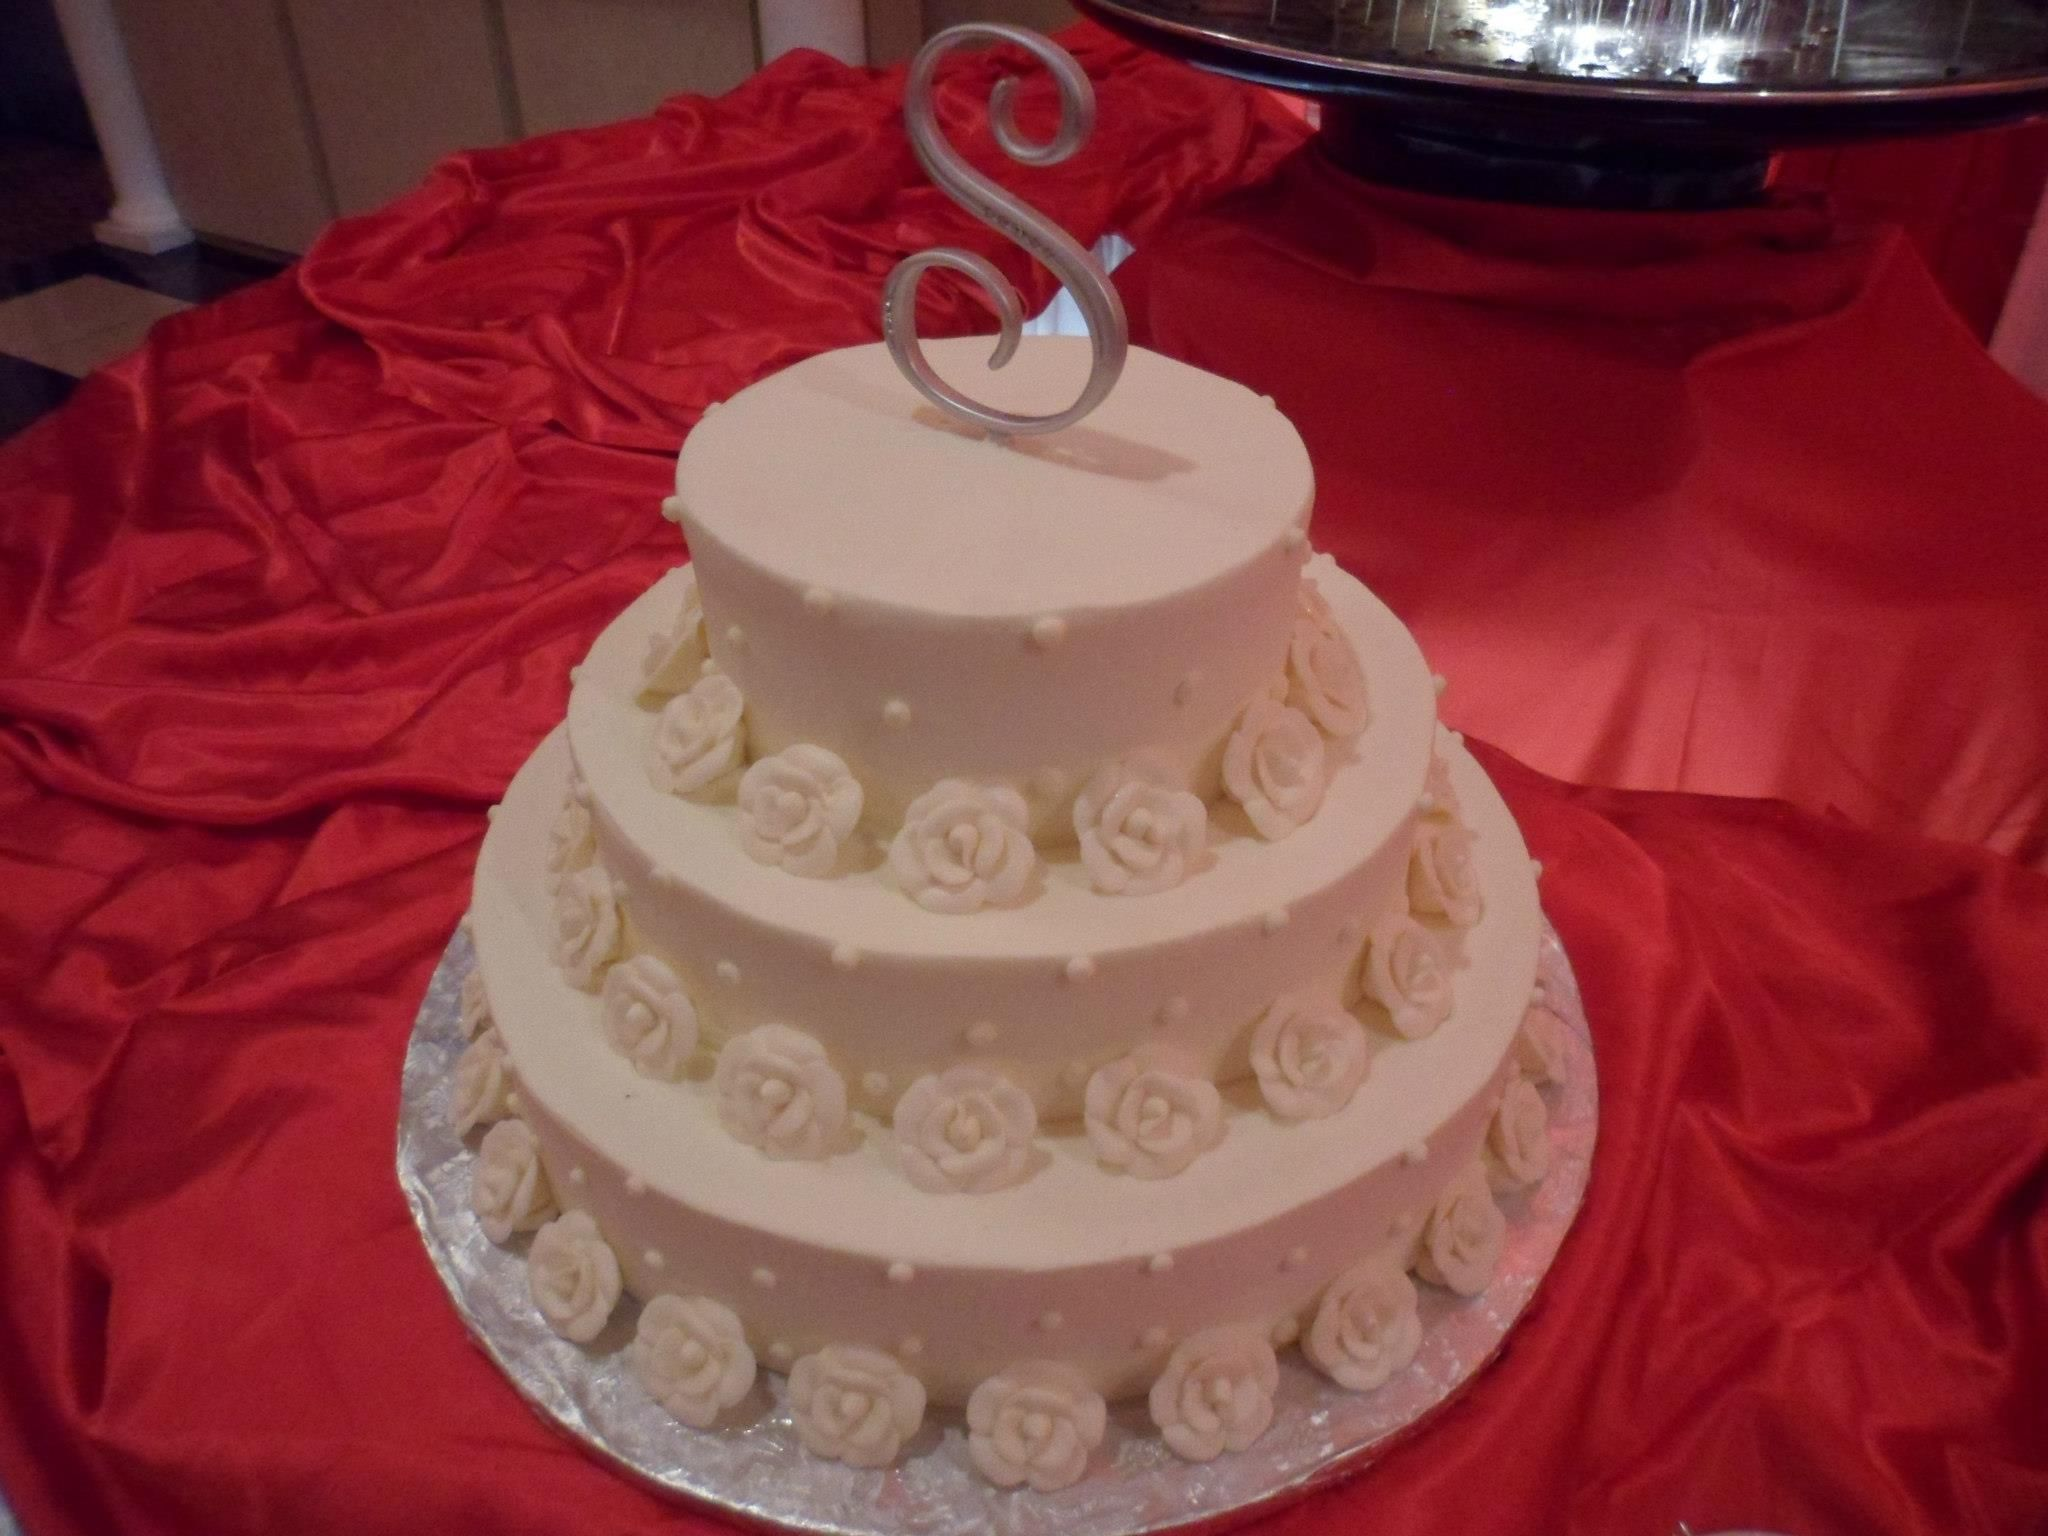 Wedding cake at the Seville in Streamwood on 3-9-13